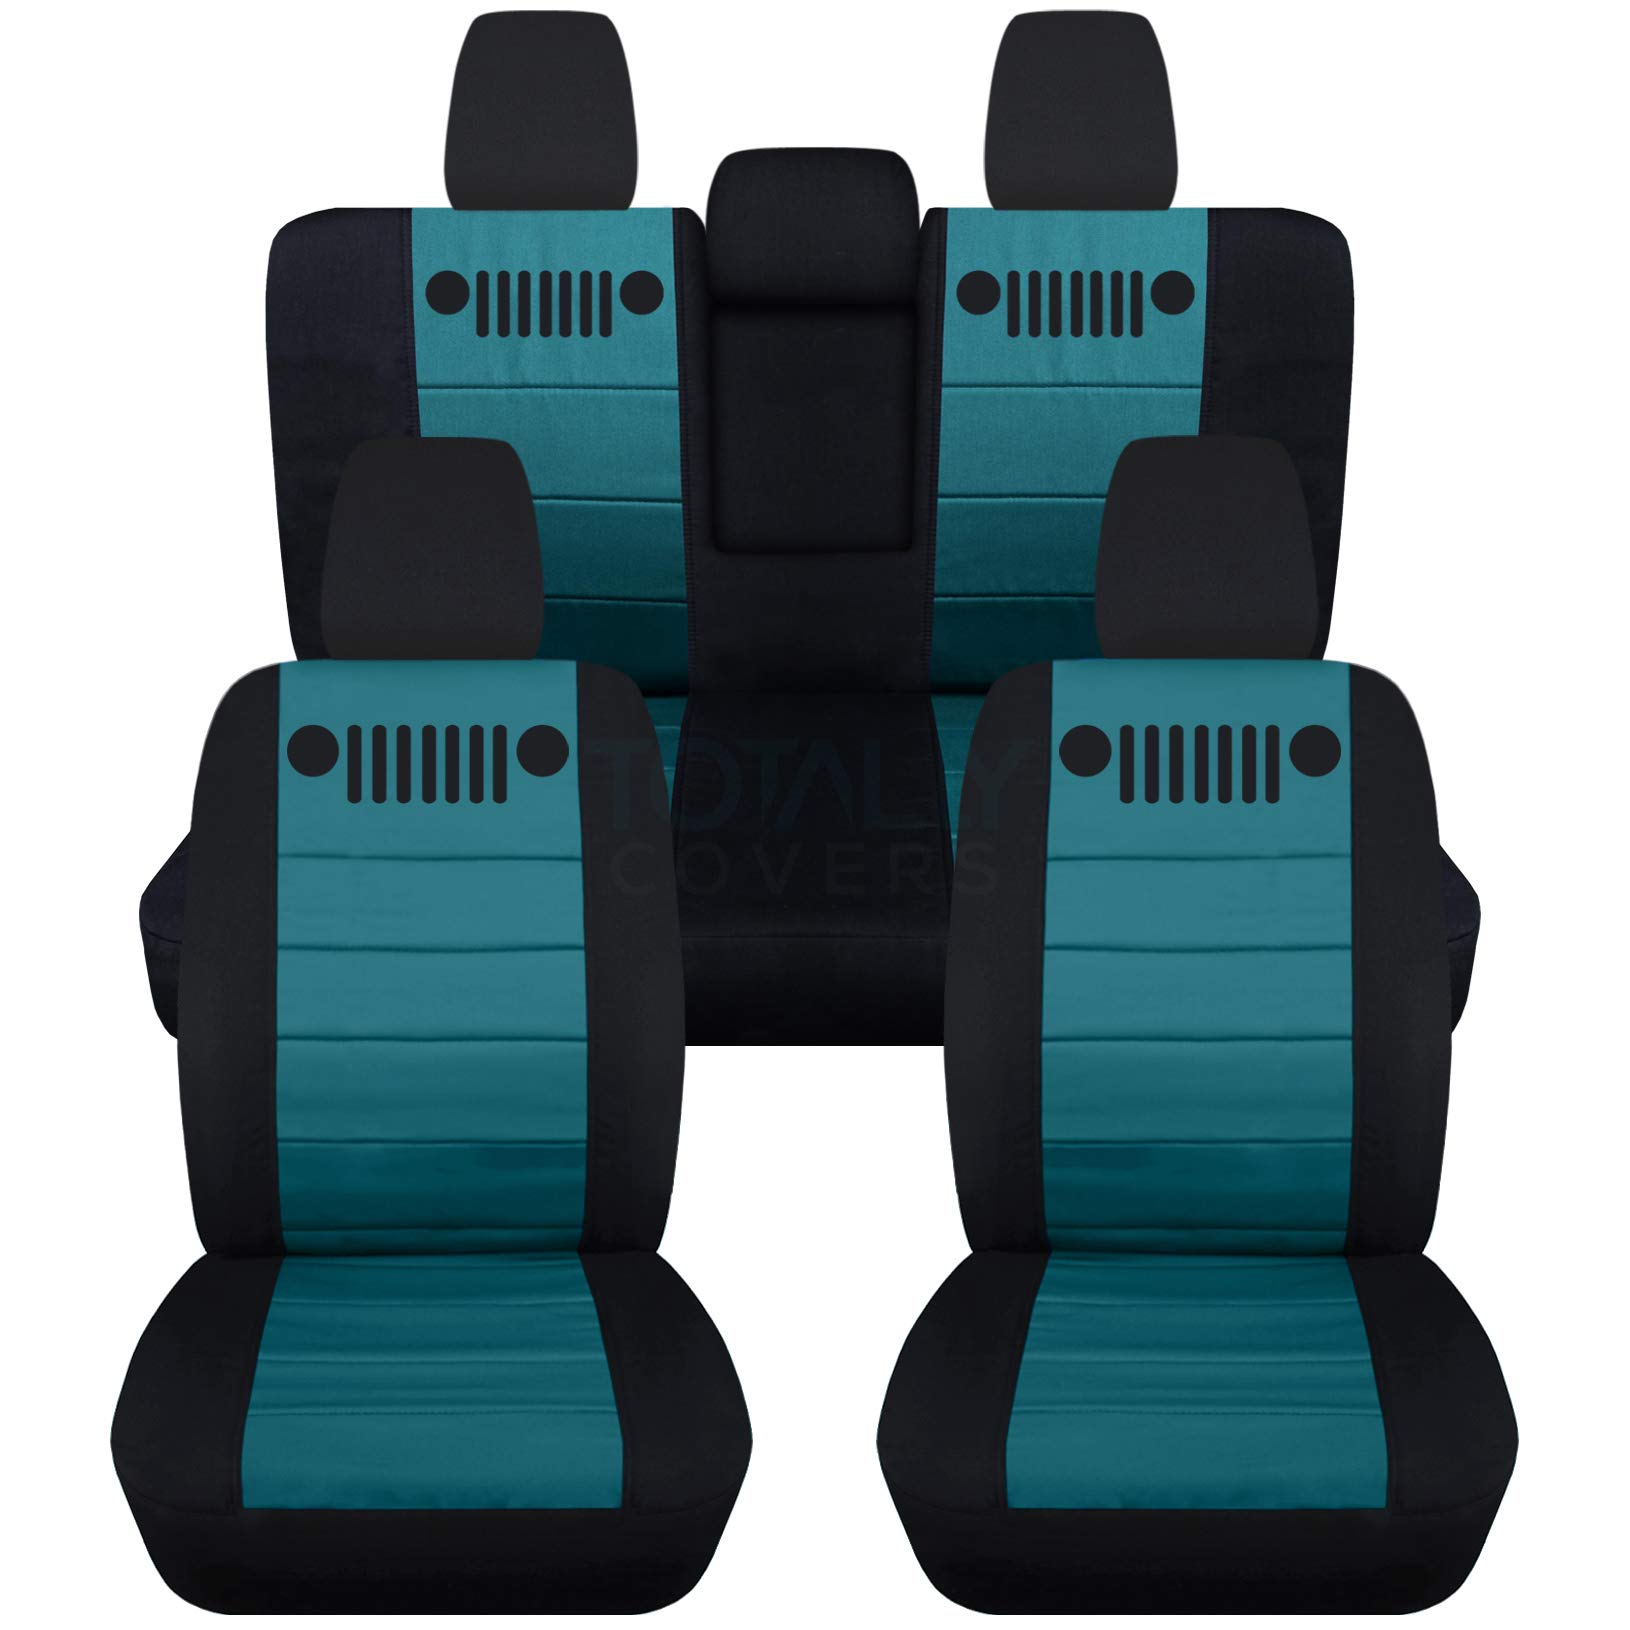 Totally Covers Fits 2018-2019 Jeep Wrangler JL Seat Covers: Black & Teal - Full Set: Front & Rear (23 Colors) 2-Door/4-Door Solid/Split Bench Back w/wo Armrest/Headrest